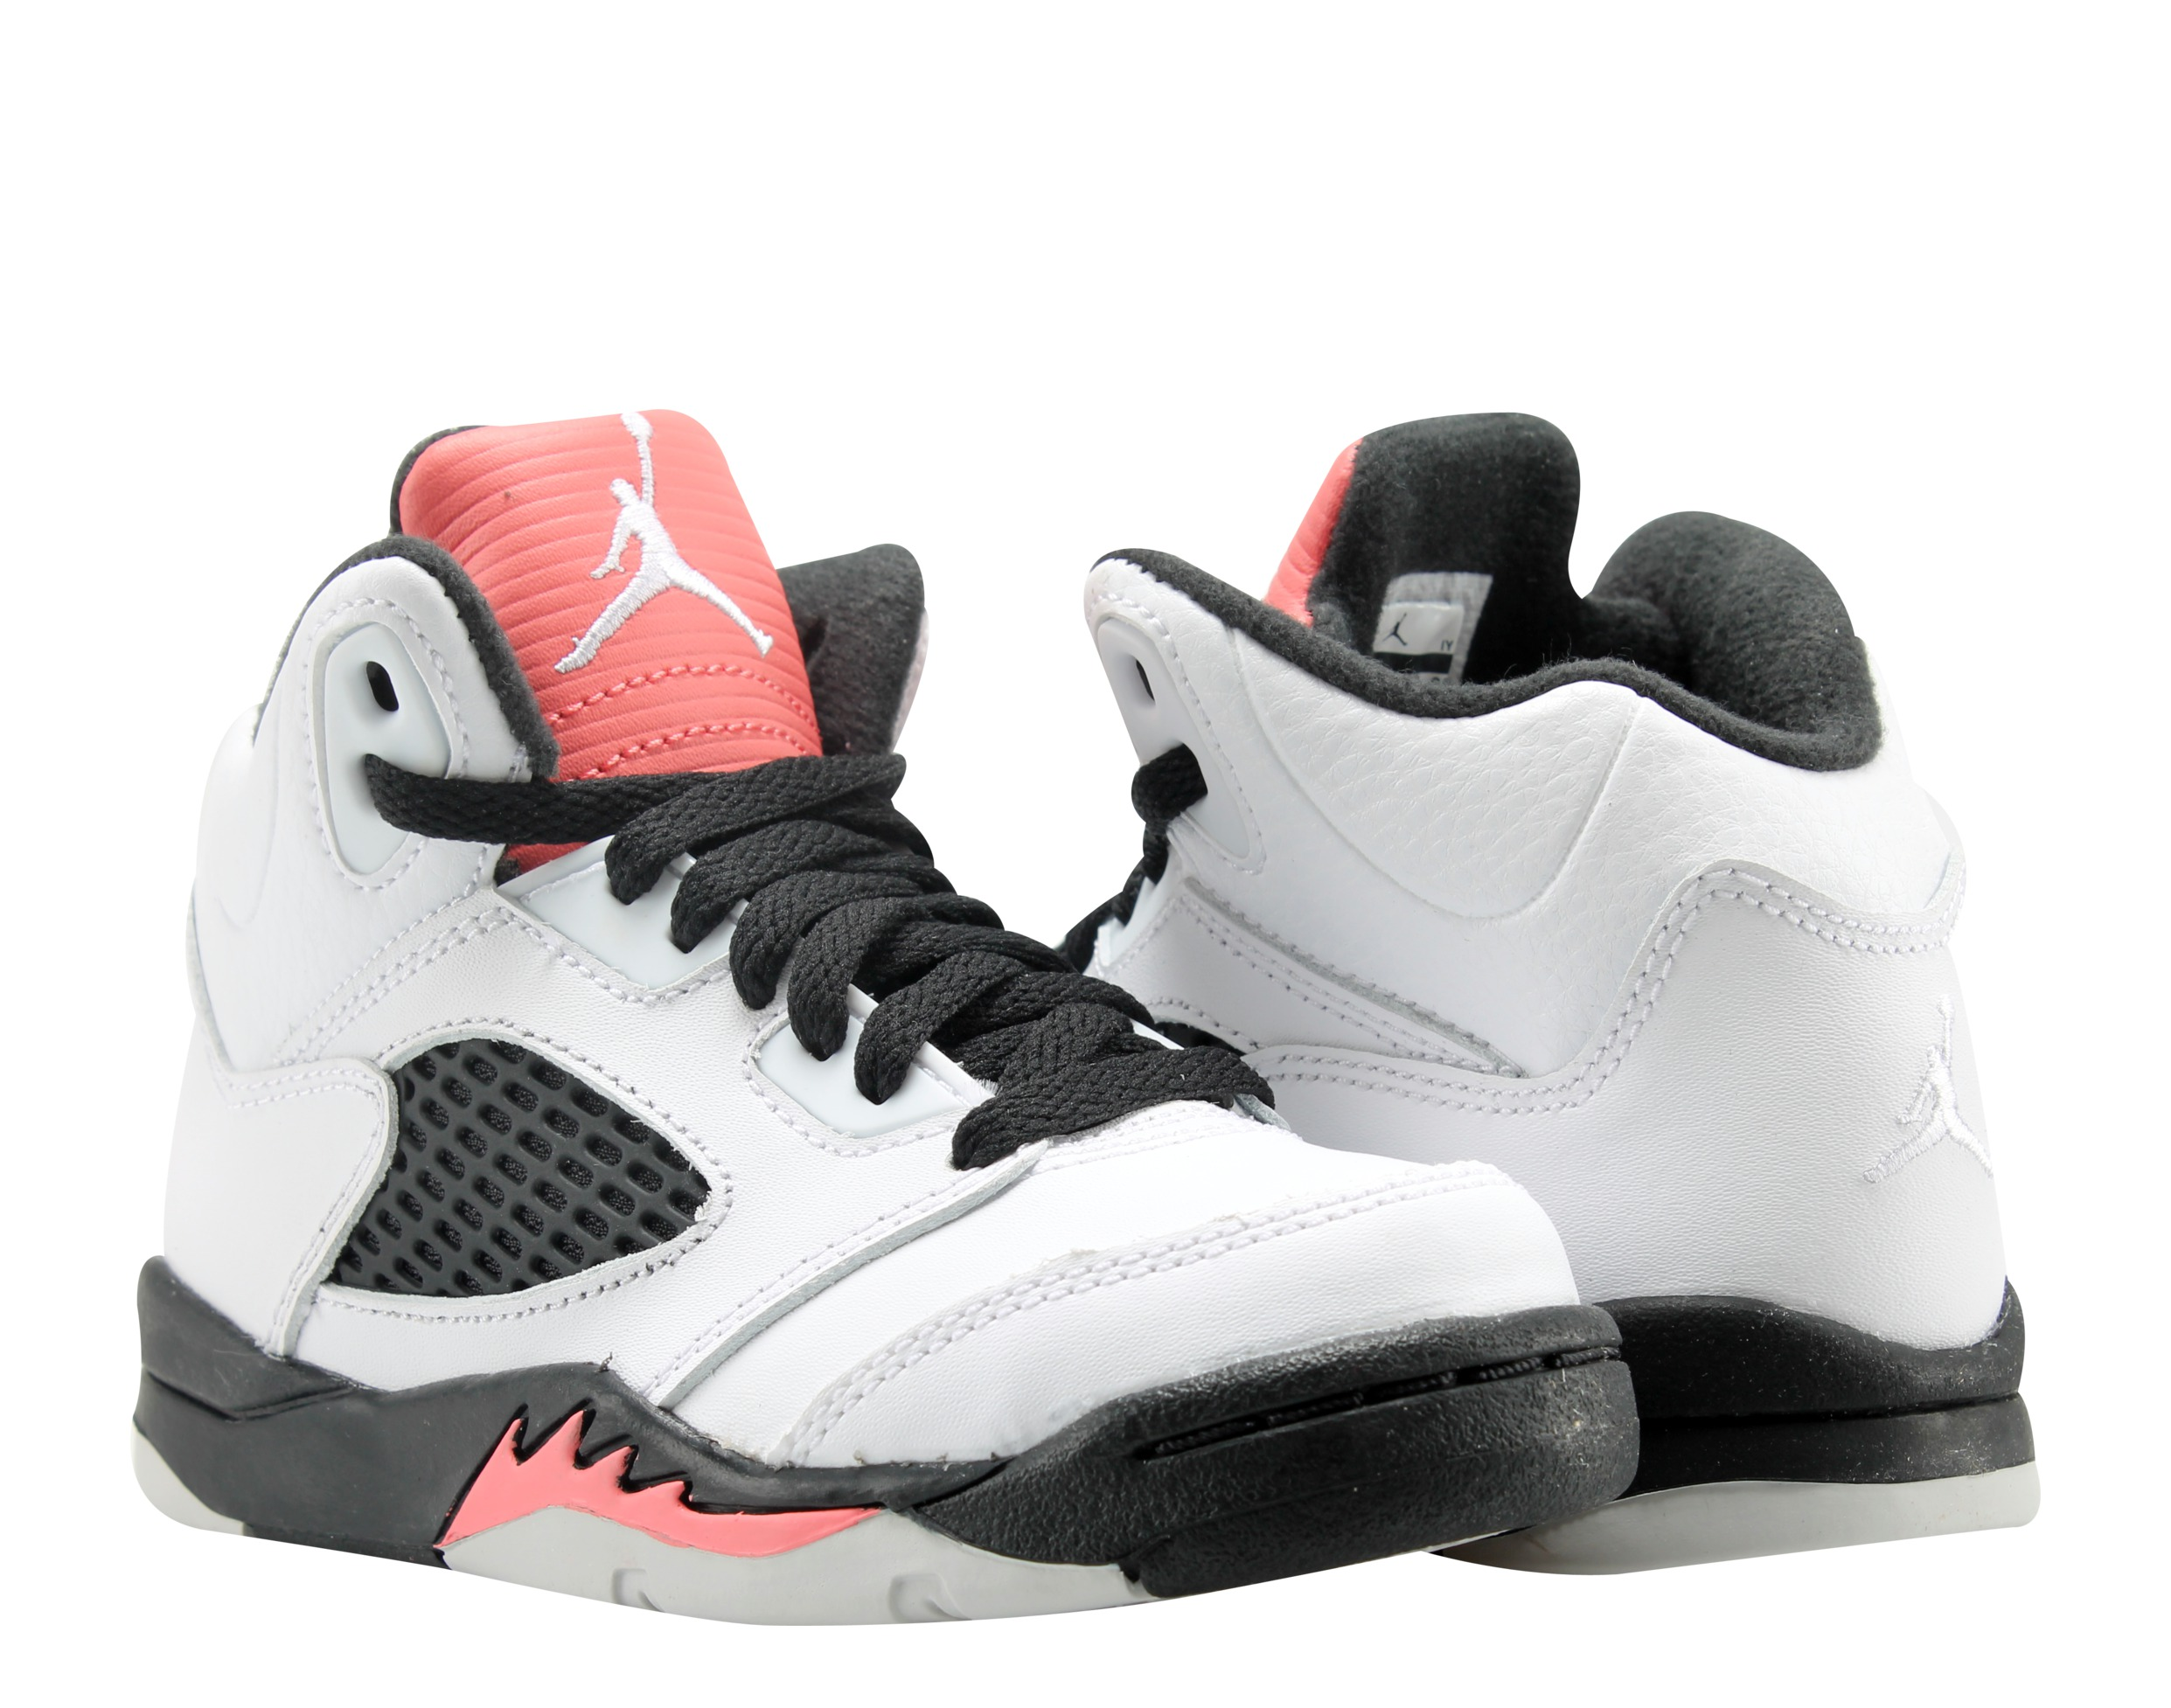 on sale 7bbe9 7ecf3 ... best price nike air jordan 5 retro gp wt pink blk little girls  basketball shoes 440893